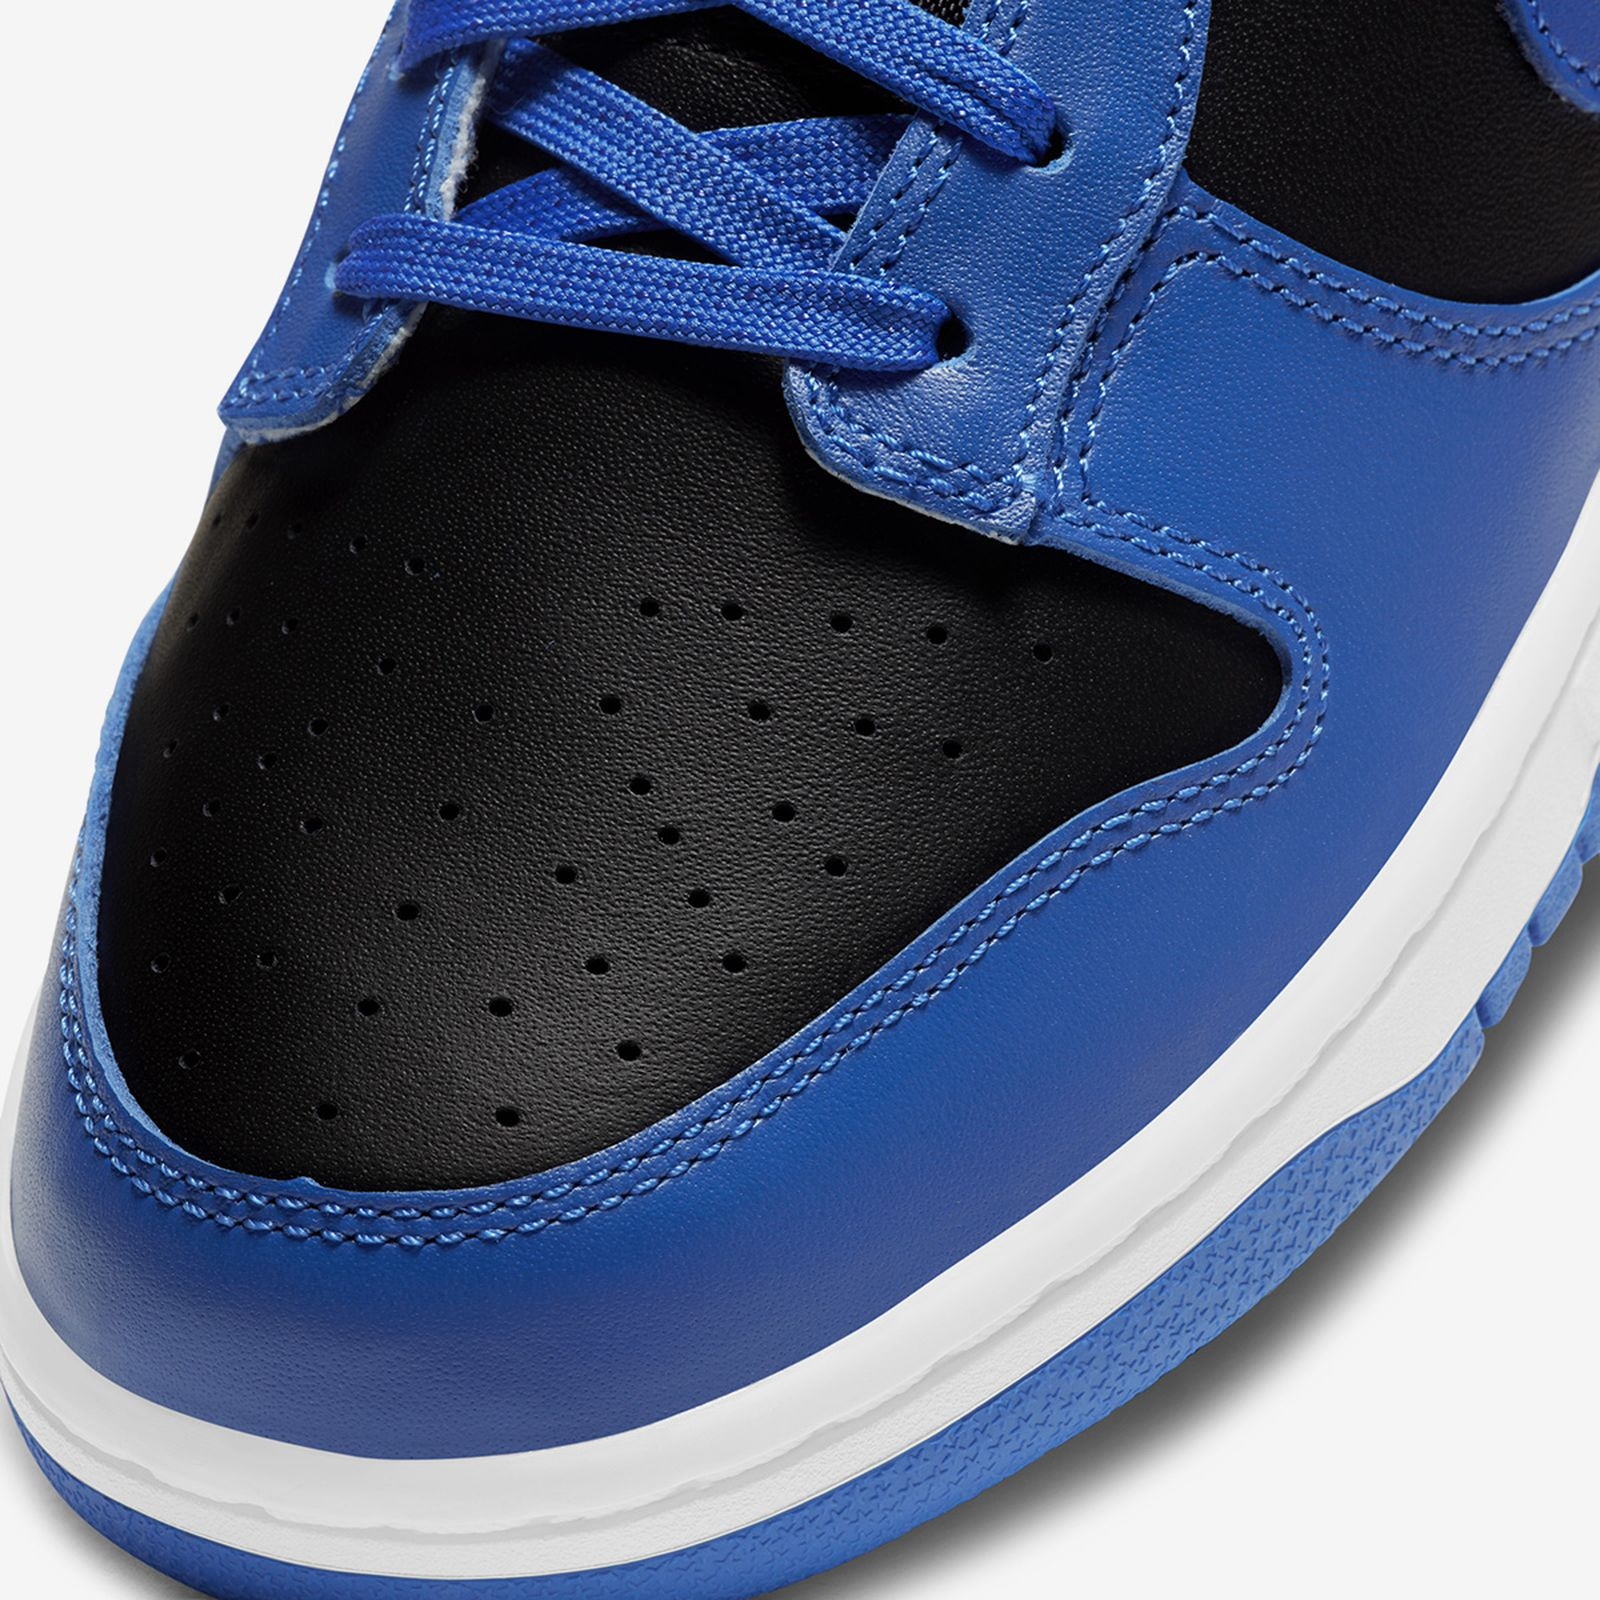 nike-dunk-spring-2021-release-date-price-1-19